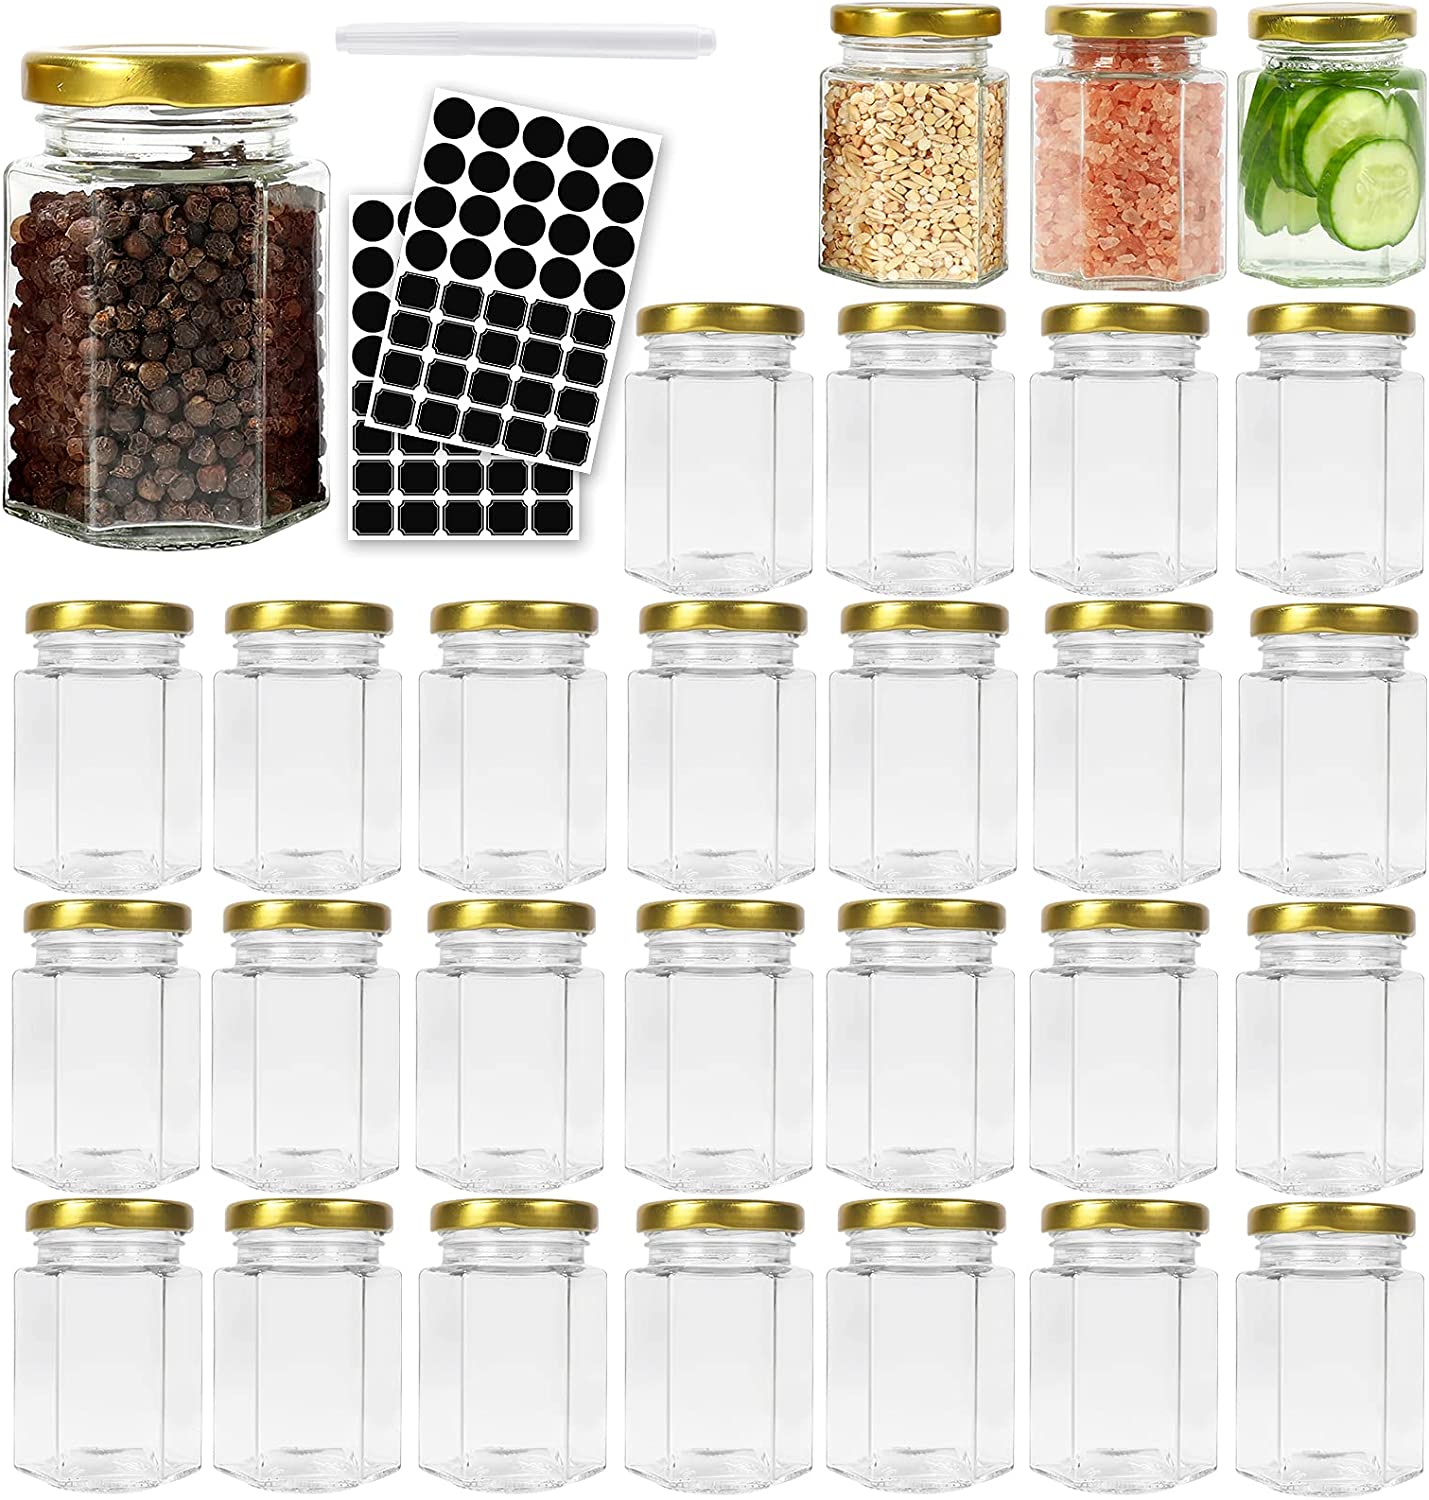 30 Pack 4 oz Popular brand in the world Hexagon Glass Canning with Phoenix Mall Jars M ml 120 Lids Gold